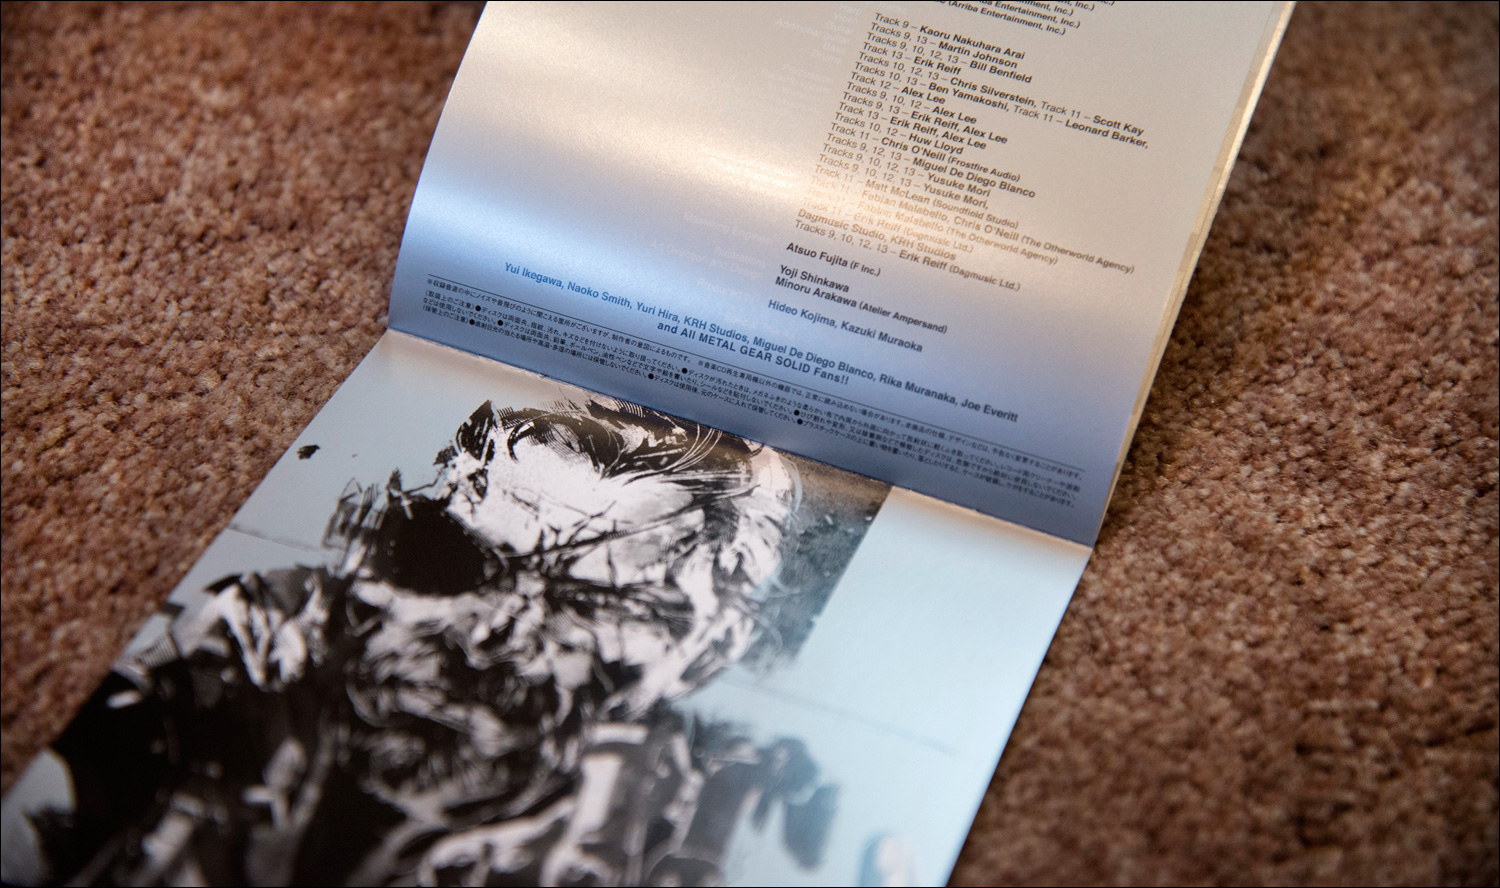 Metal-Gear-Solid-Vocal-Tracks-Booklet-Credits